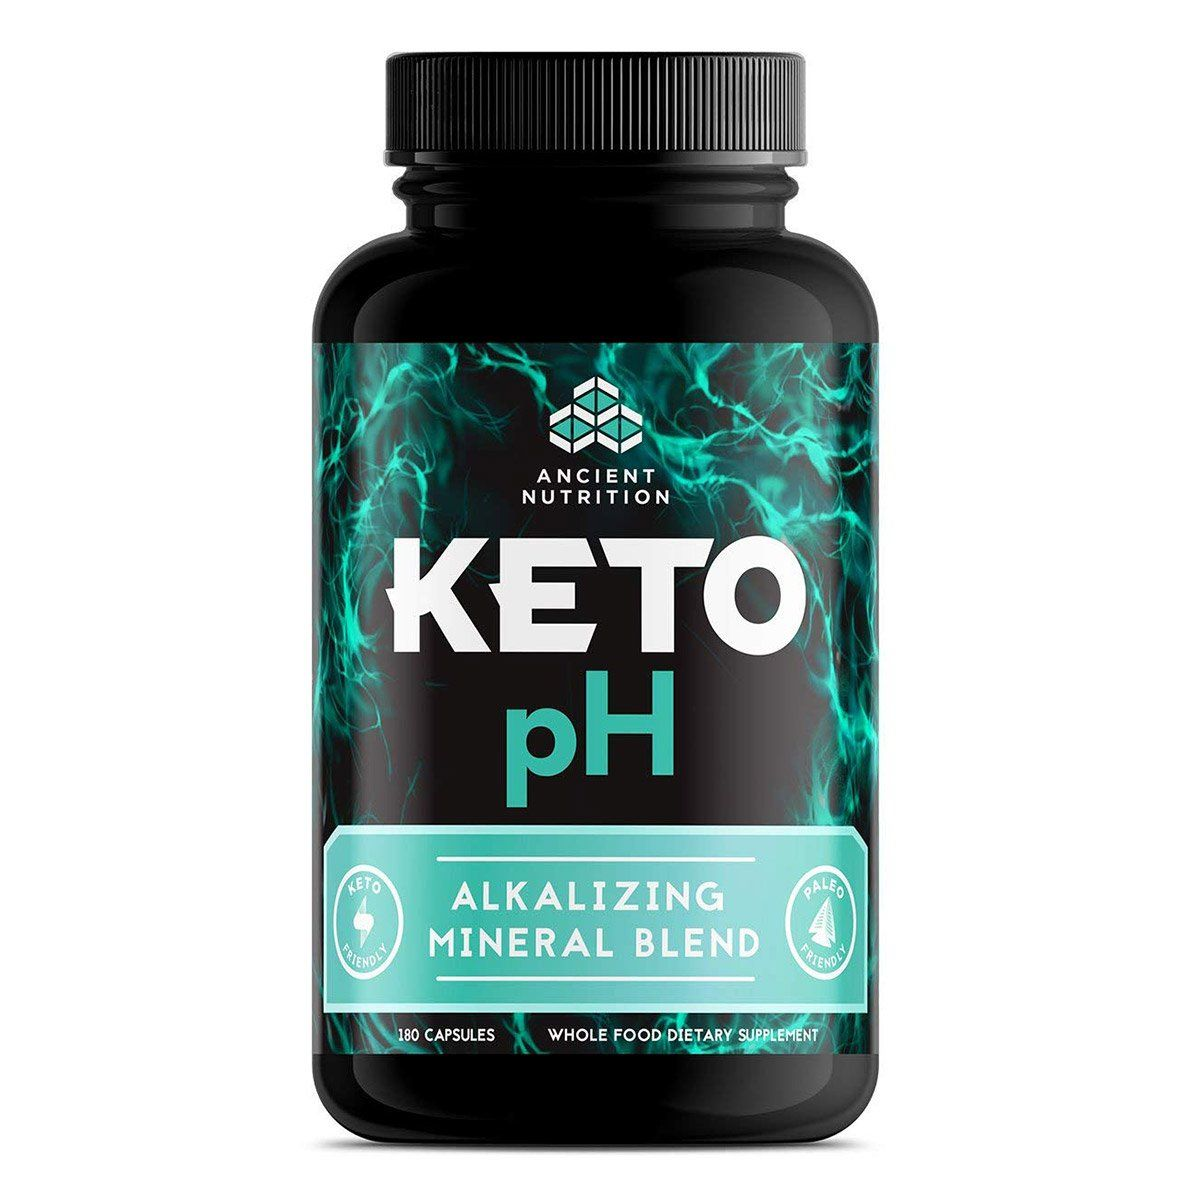 Ancient Nutrition Keto pH 180 CAPS Specialty Health Products Ancient Nutrition  (1399373987883)